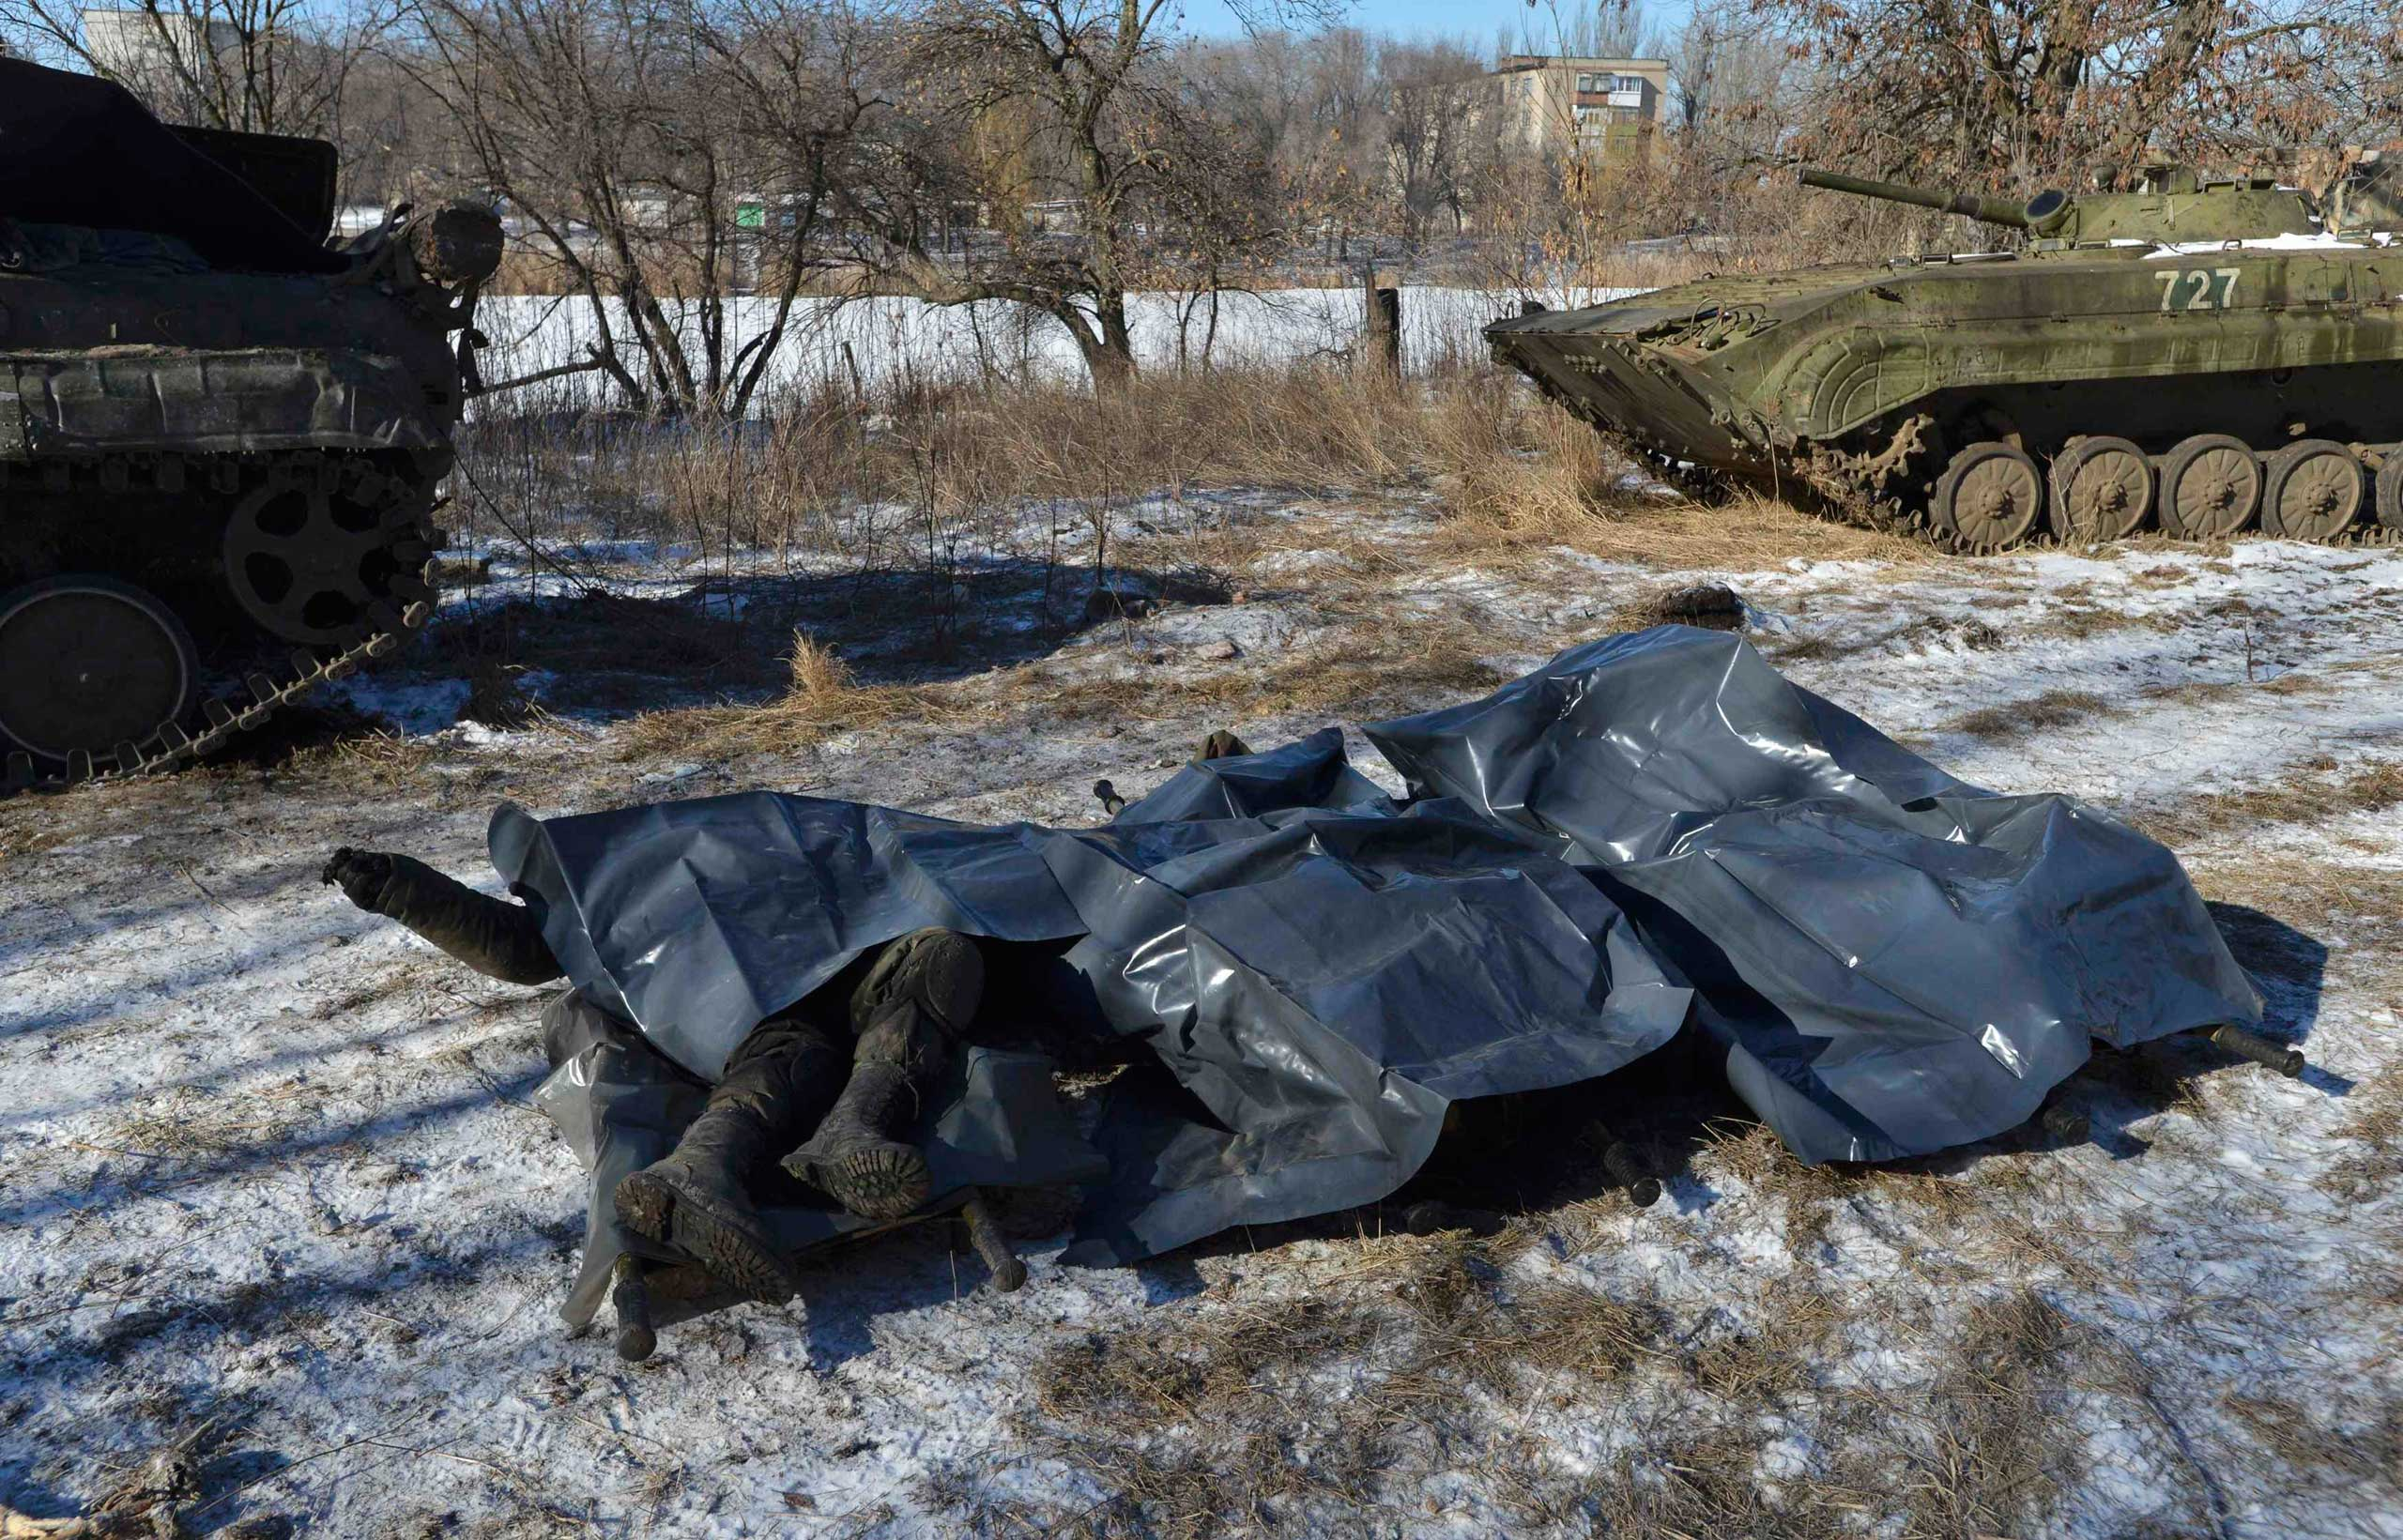 Bodies of Ukrainian soldiers killed in Debaltseve are pictured on stretchers at a military camp in Artemivsk, Feb. 18, 2015.